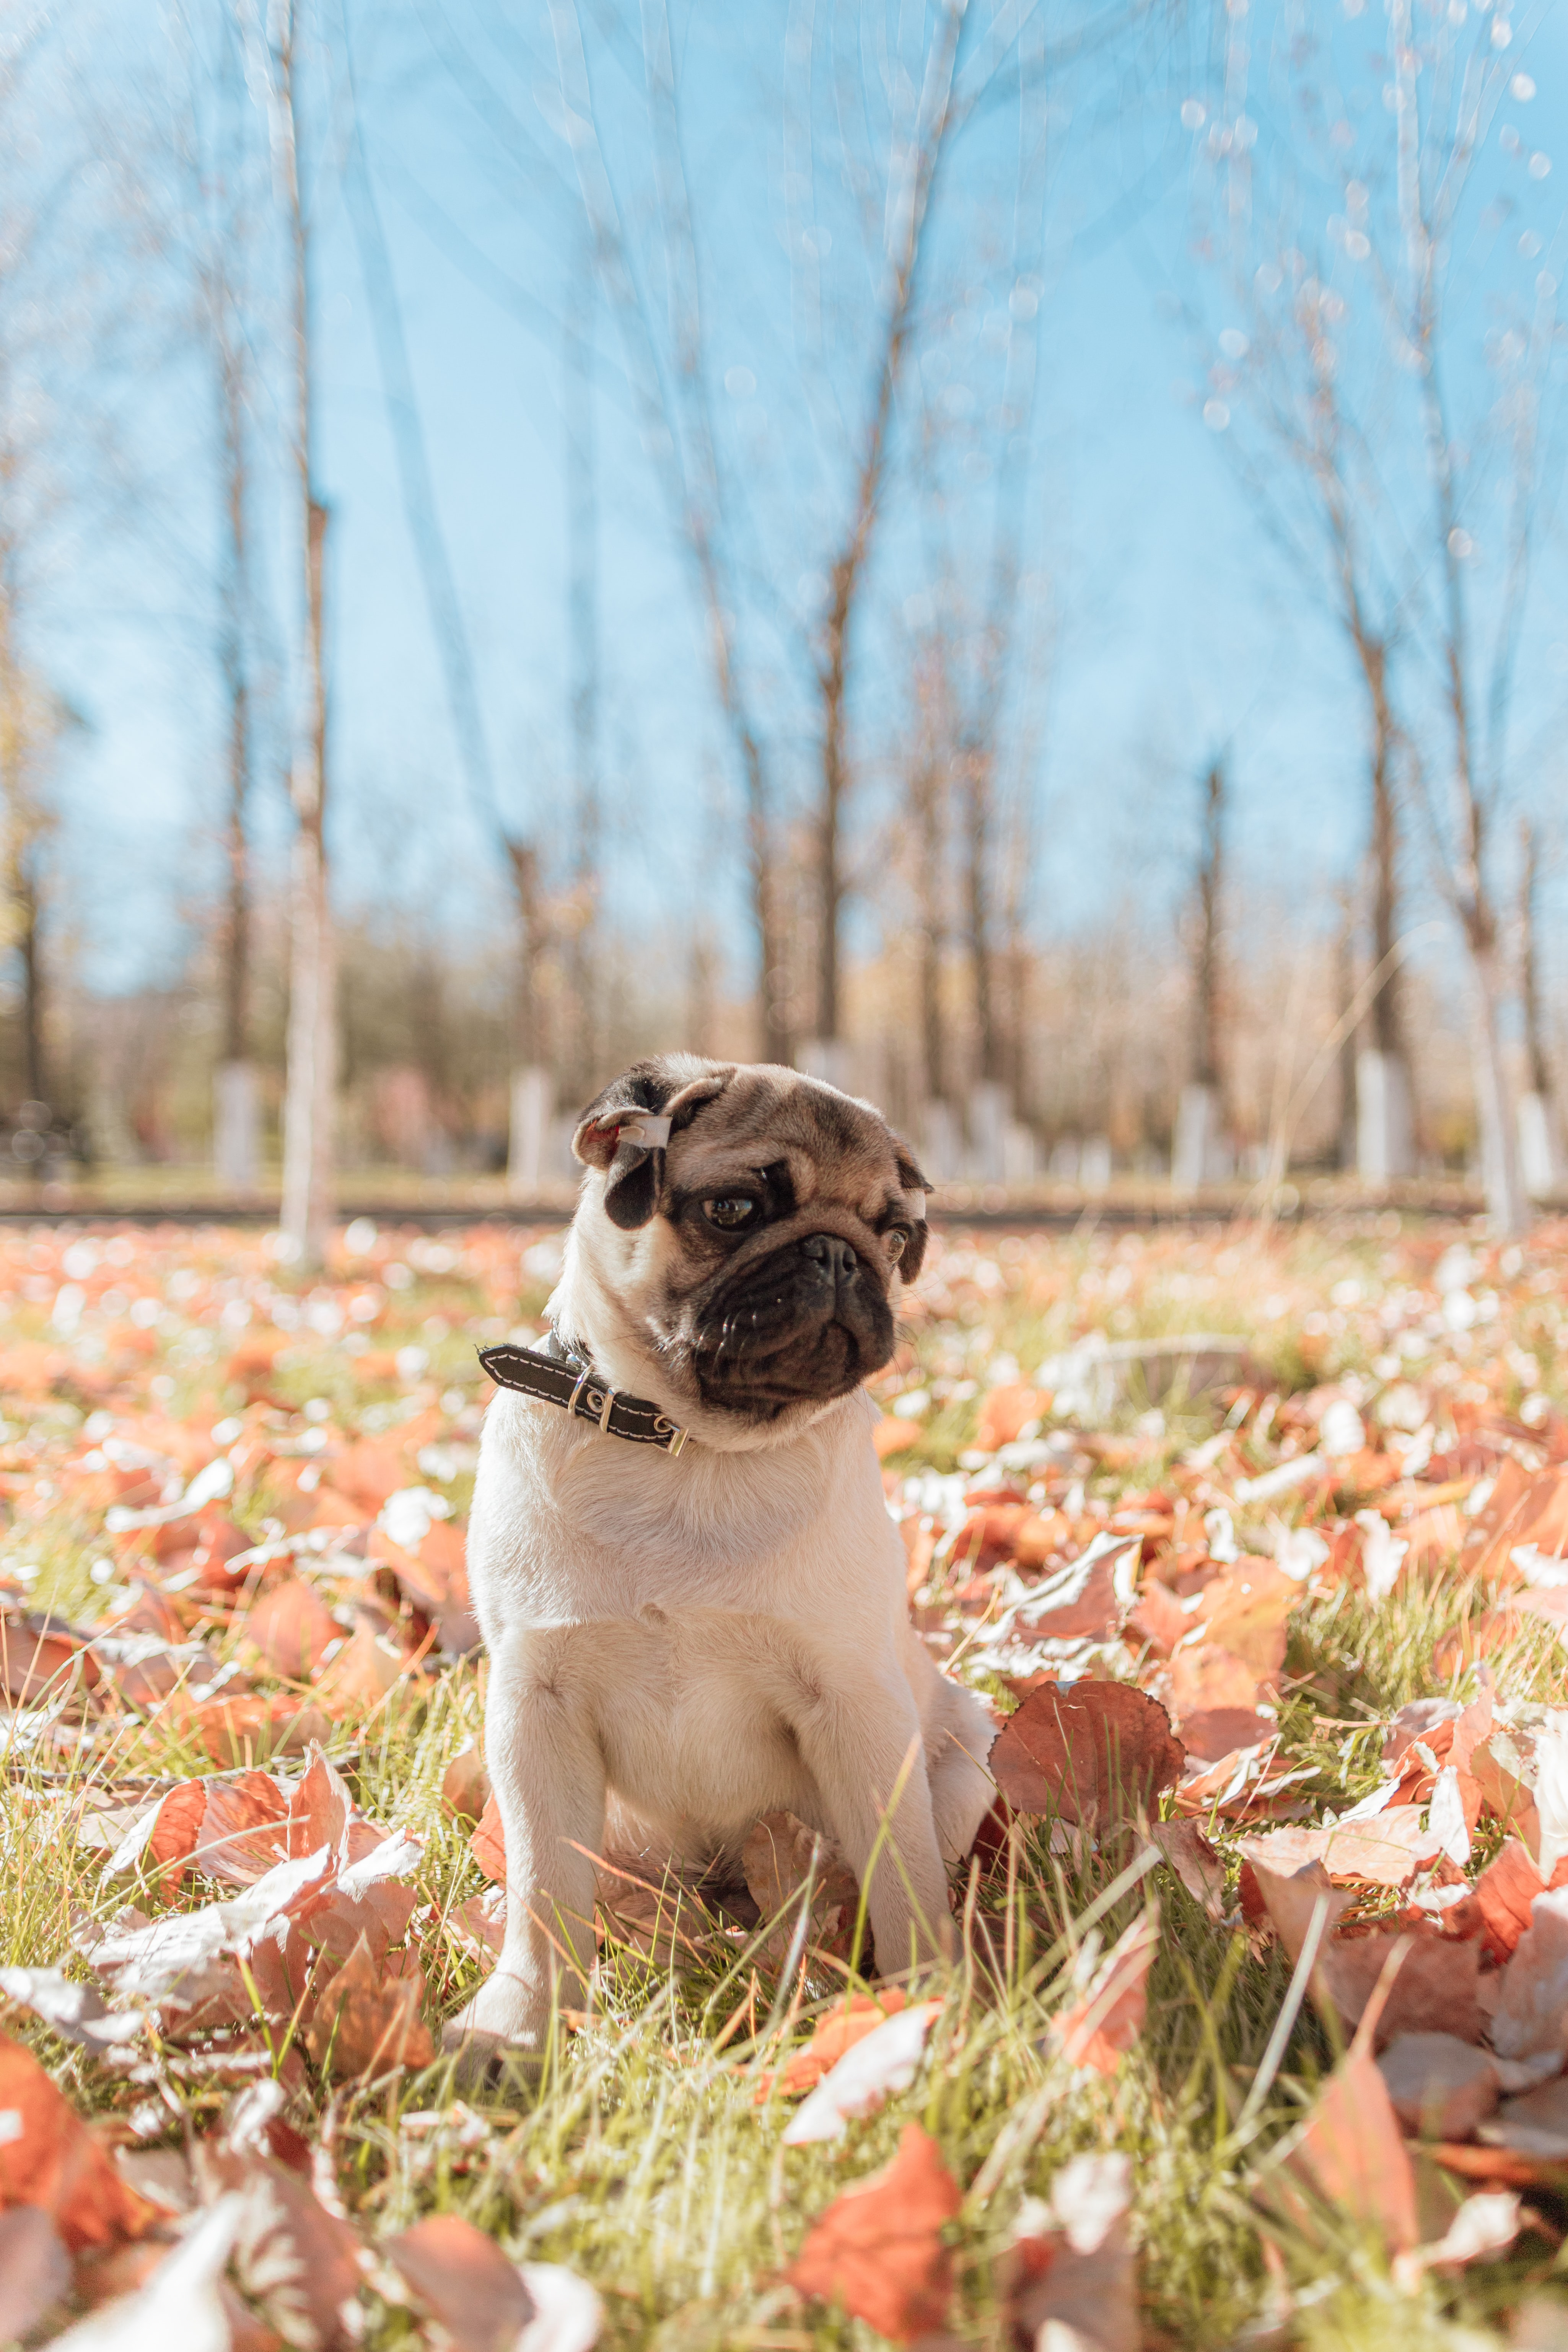 59657 download wallpaper Animals, Pug, Dog, Pet, Animal screensavers and pictures for free